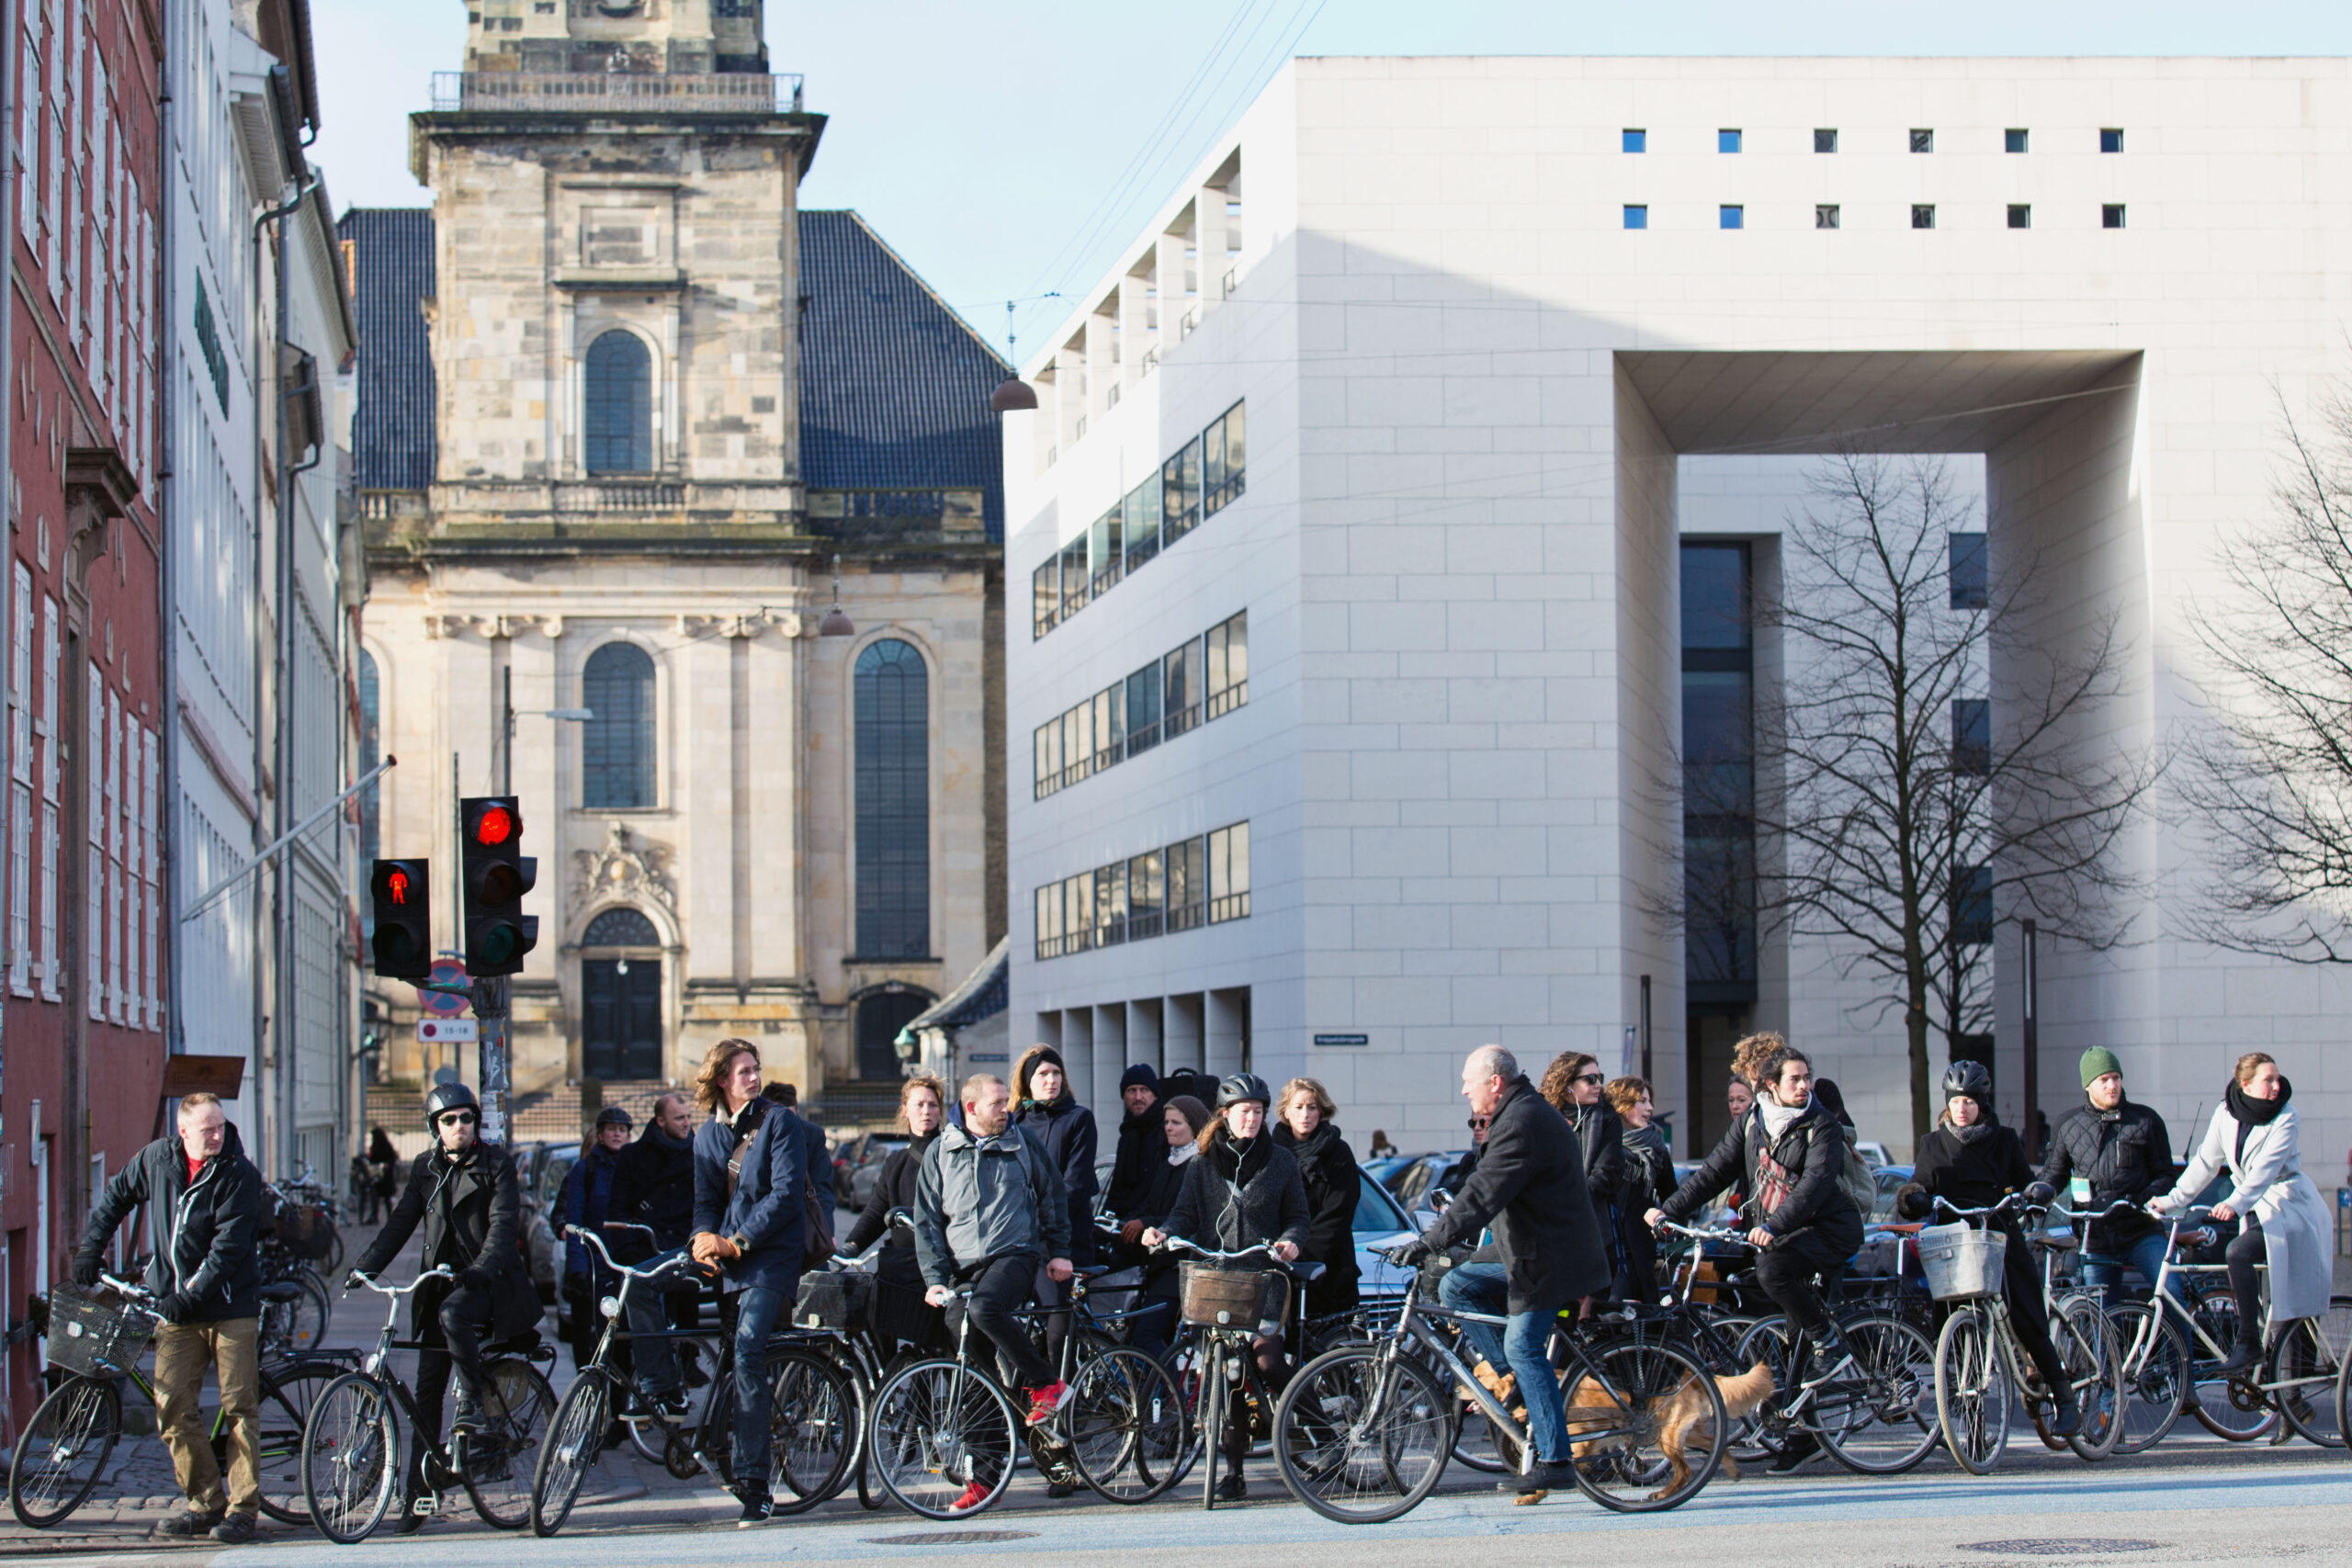 Nearly two-thirds of Copenhageners use a bicycle as their main means of transport